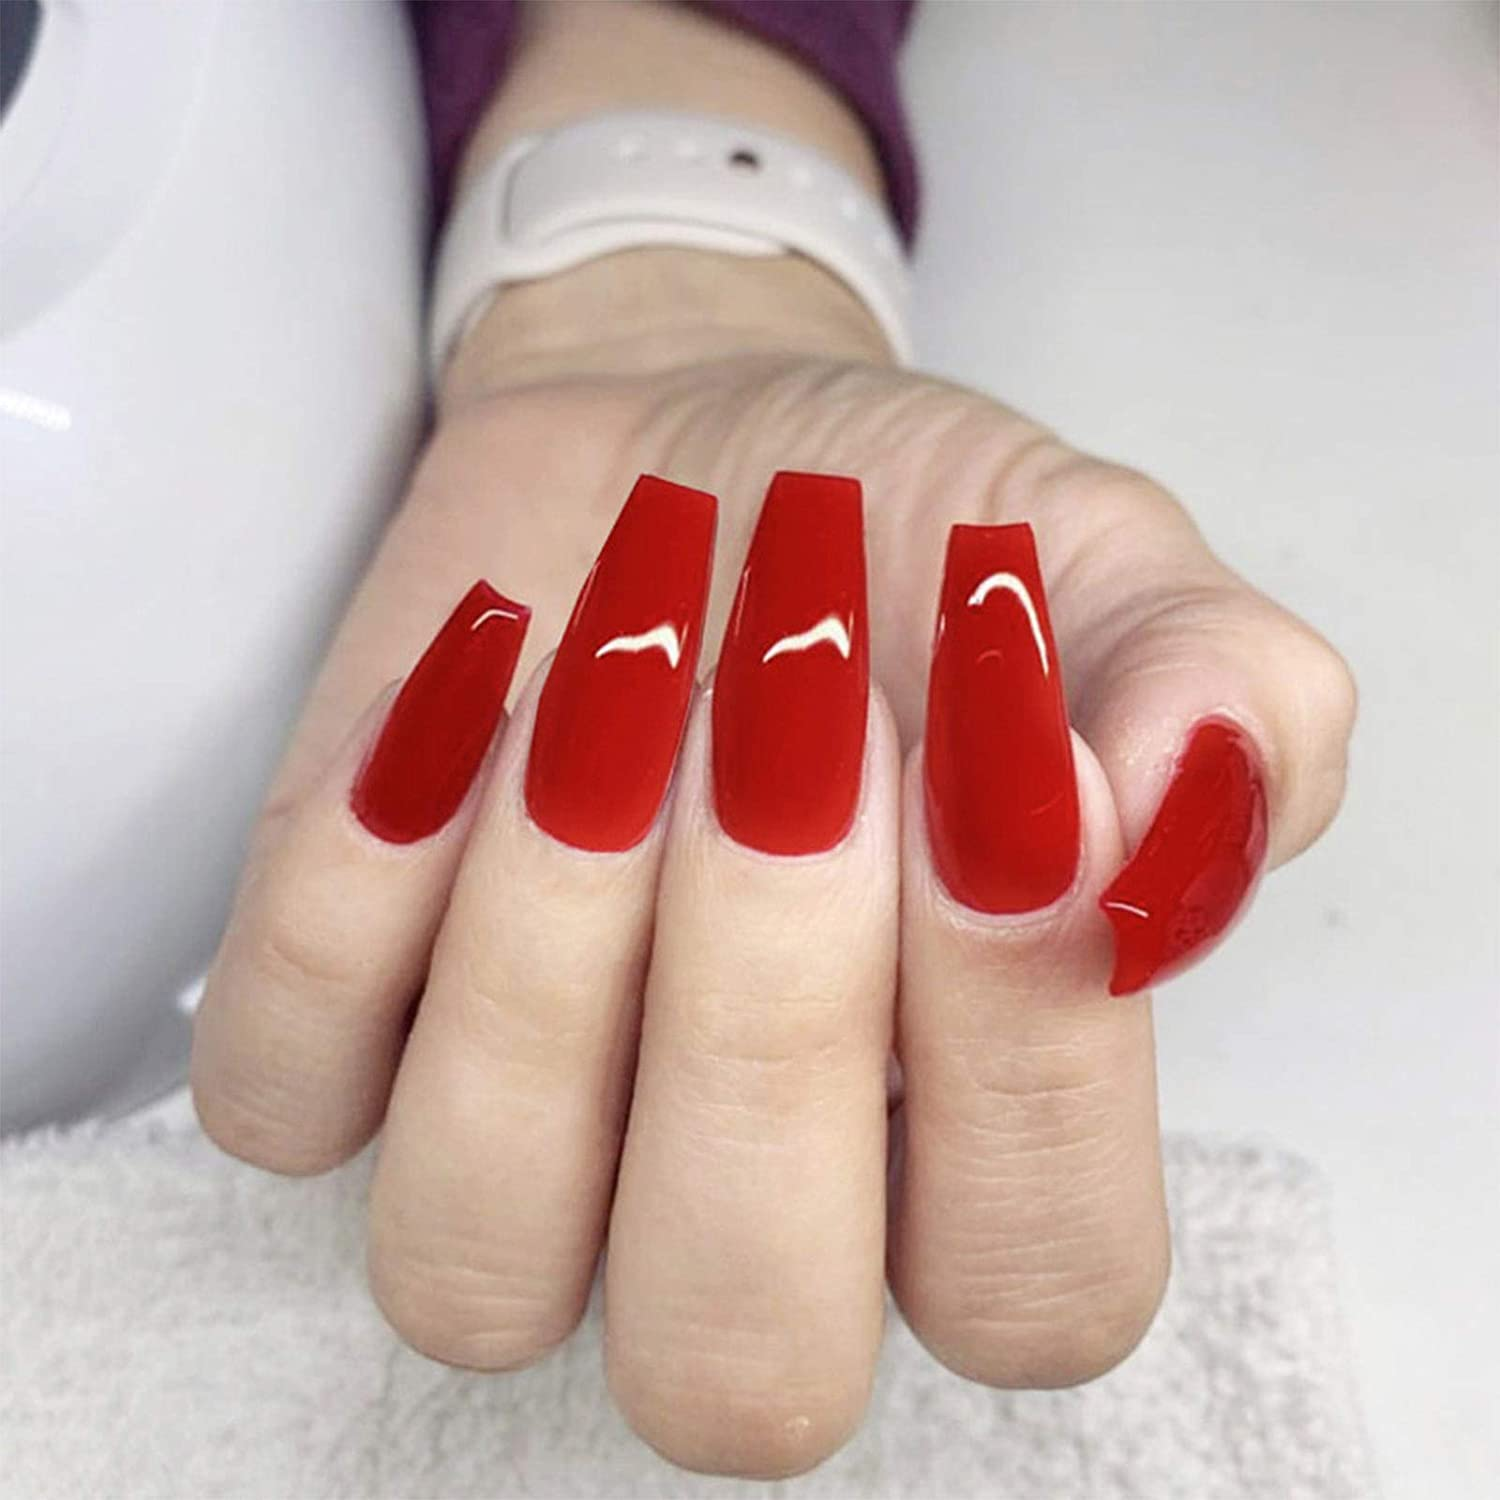 YienDoo Glossy Coffin price False Nails Color B Opening large release sale Red Long Acrylic